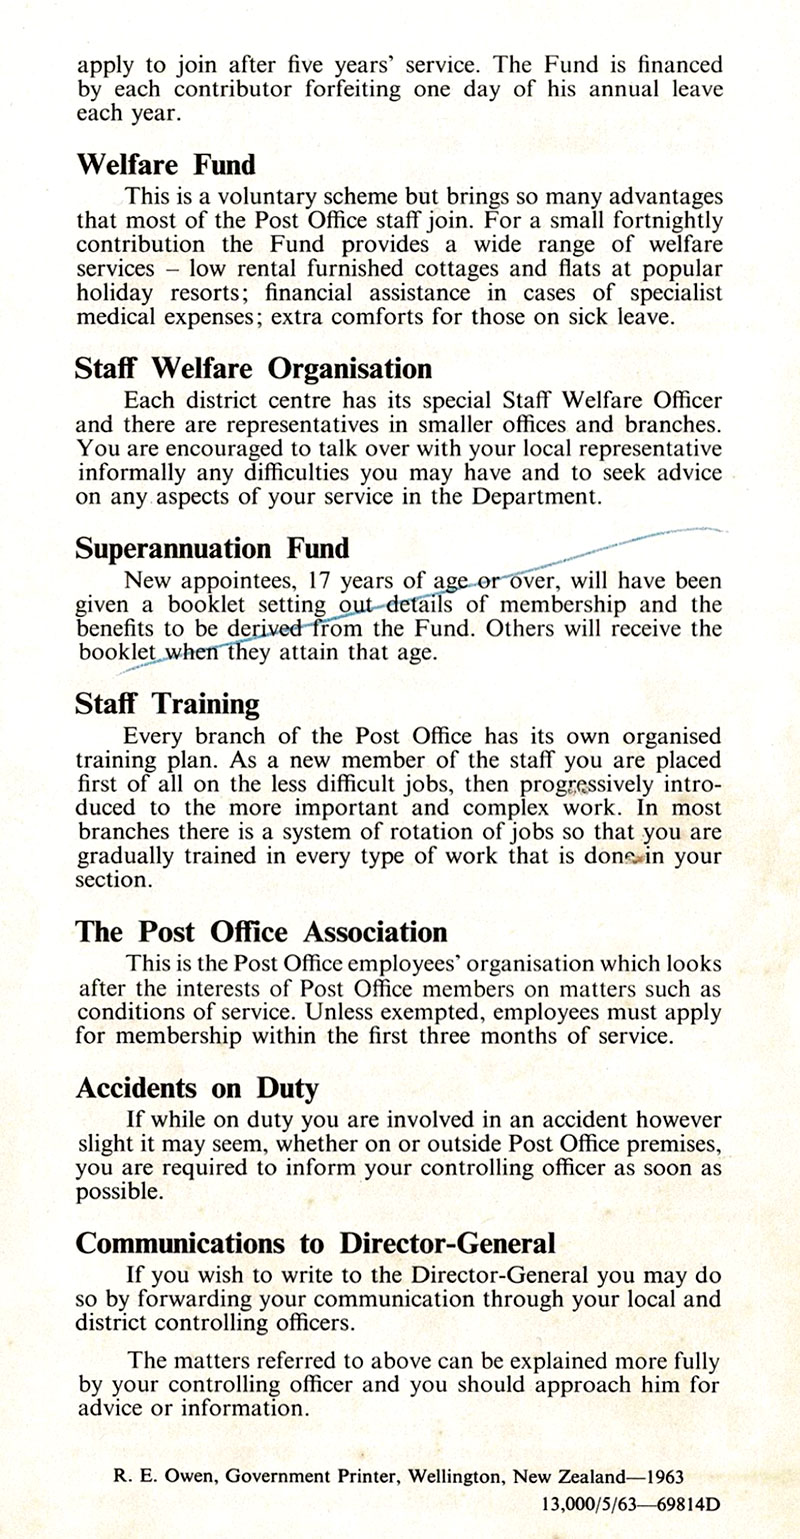 1963 NZPO Information for new appointees